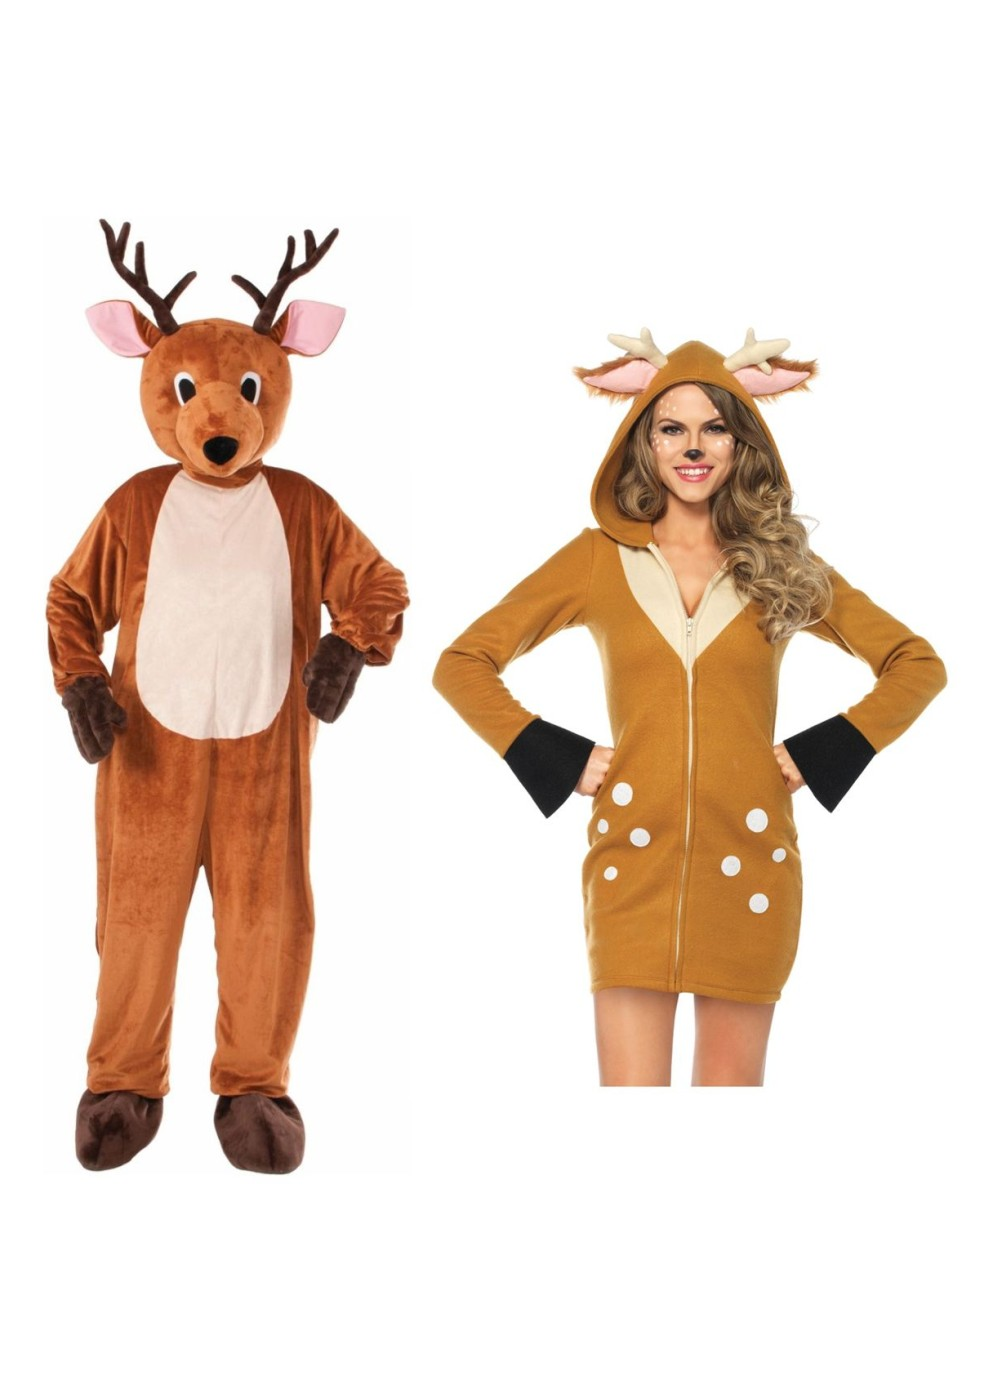 Christmas Reindeer Mascot Men Costume And Reindeer Women